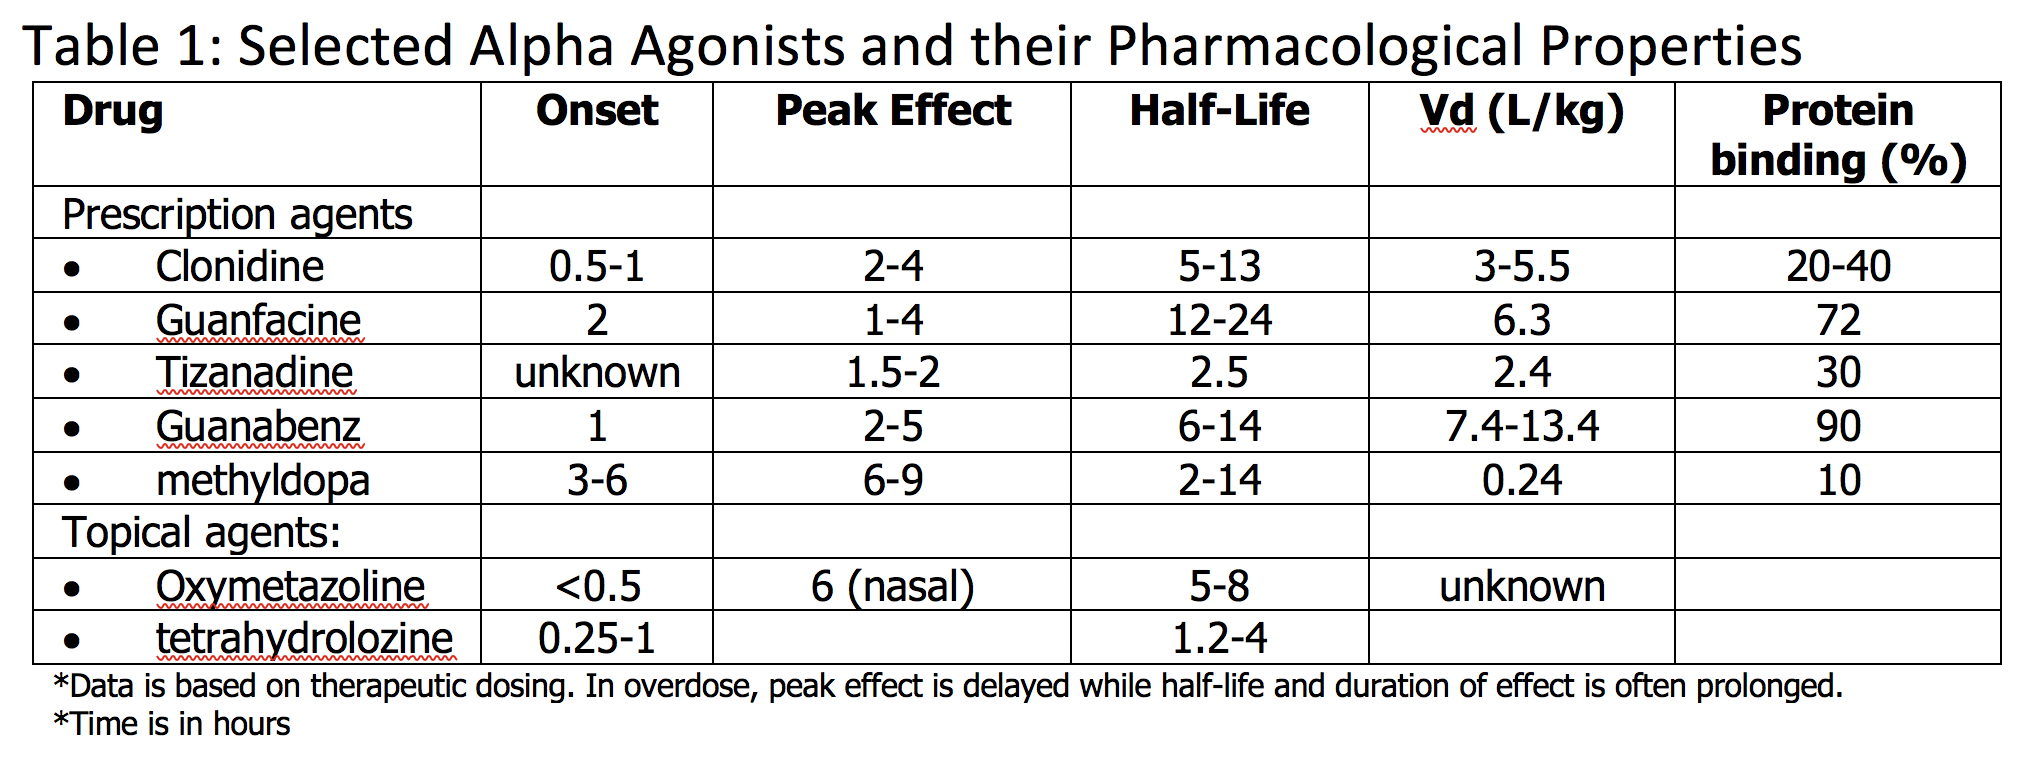 Selected Alpha Agonists and their Pharmacological Properties